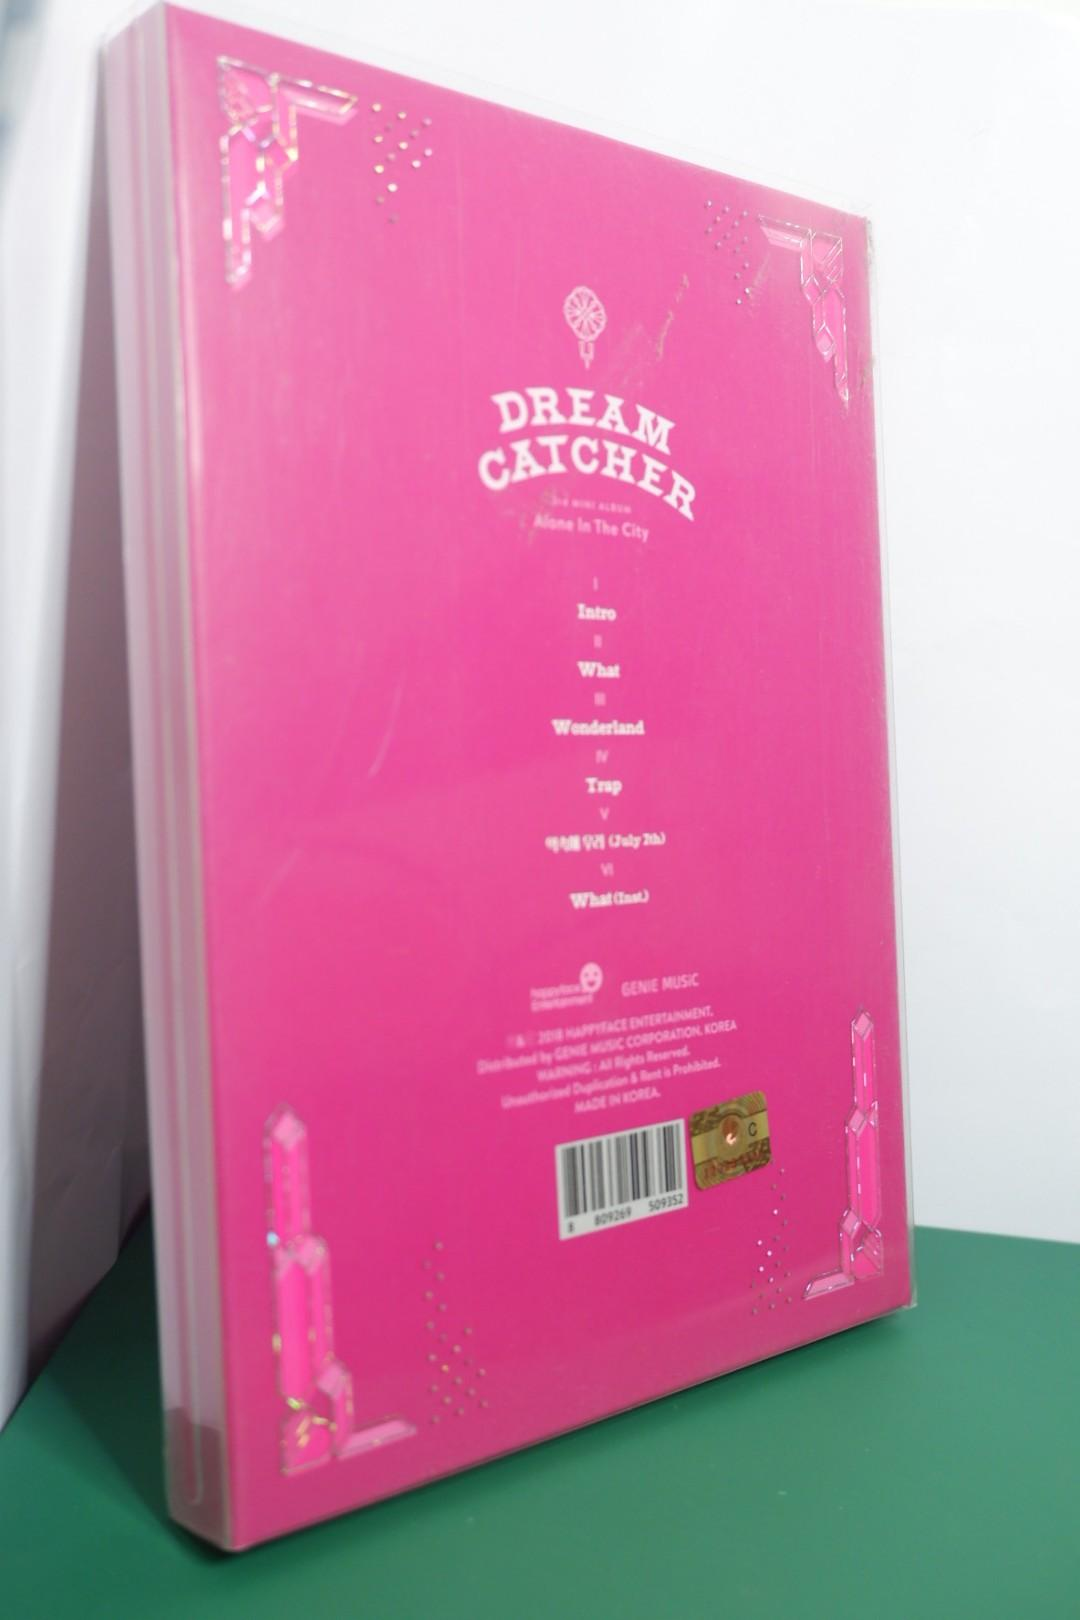 DREAMCATCHER 'ALONE IN THE CITY' LIGHT VERSION (ALBUM ONLY)